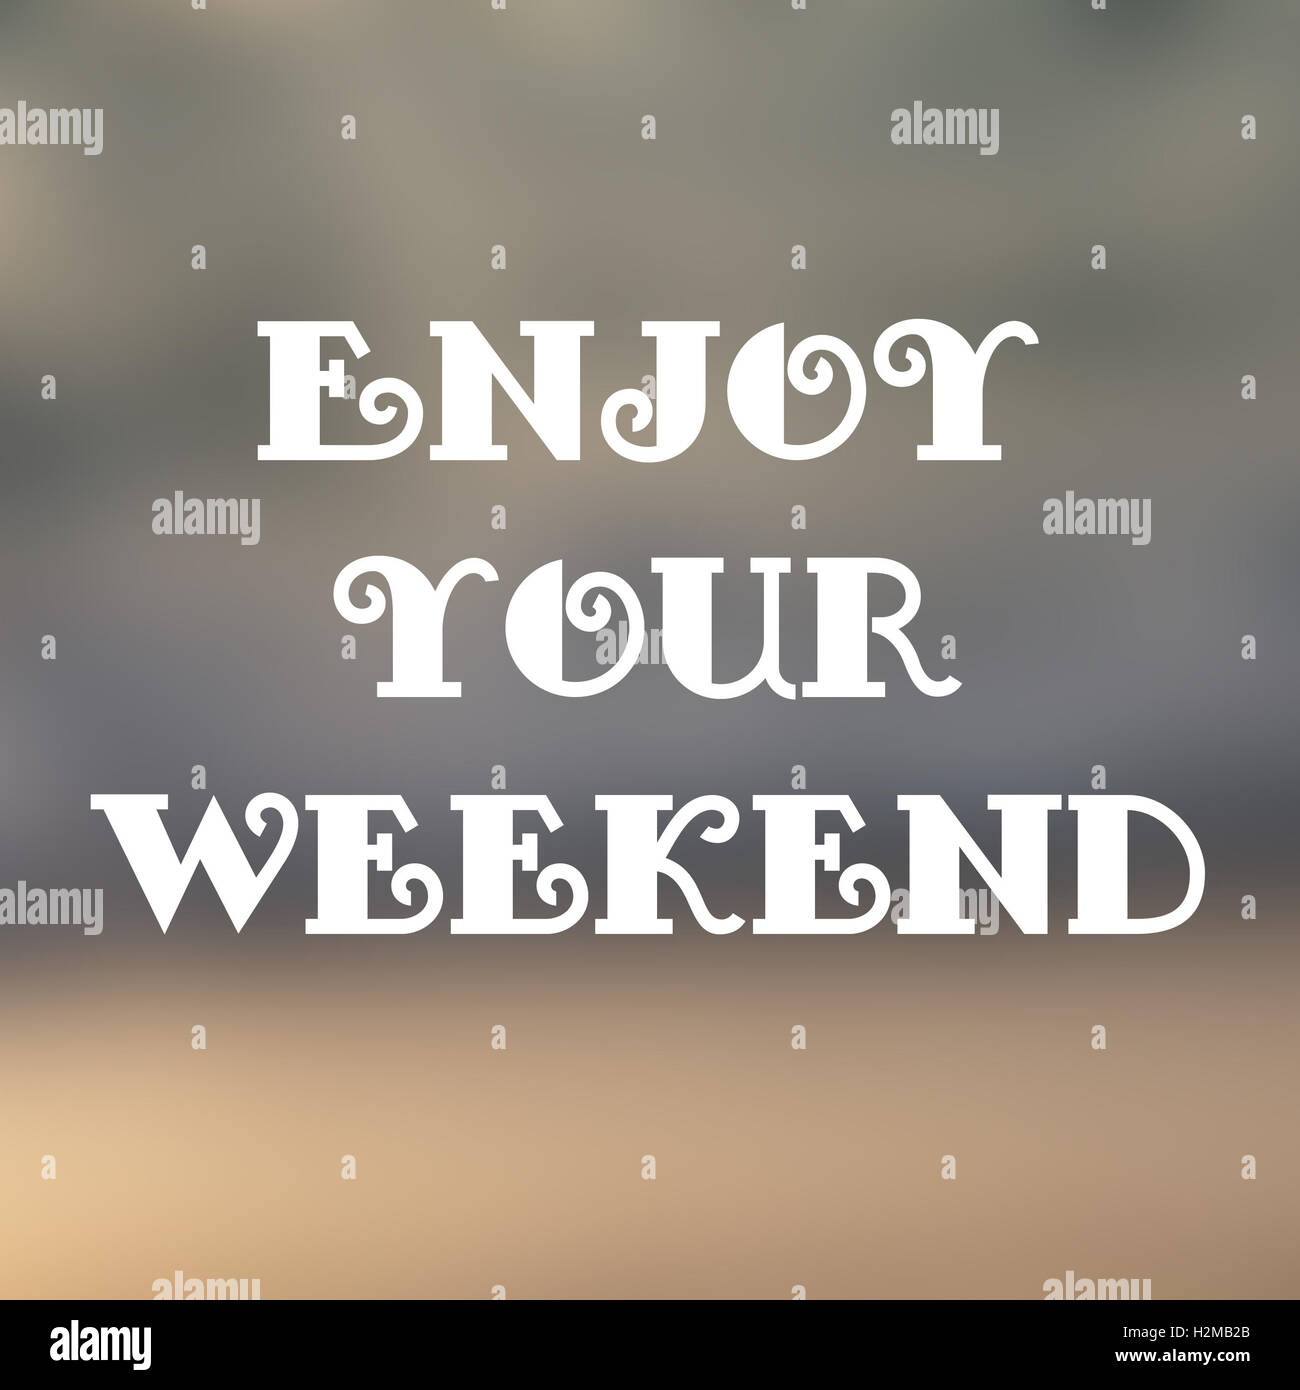 Enjoy Your Weekend Text On Blured Background   Stock Image